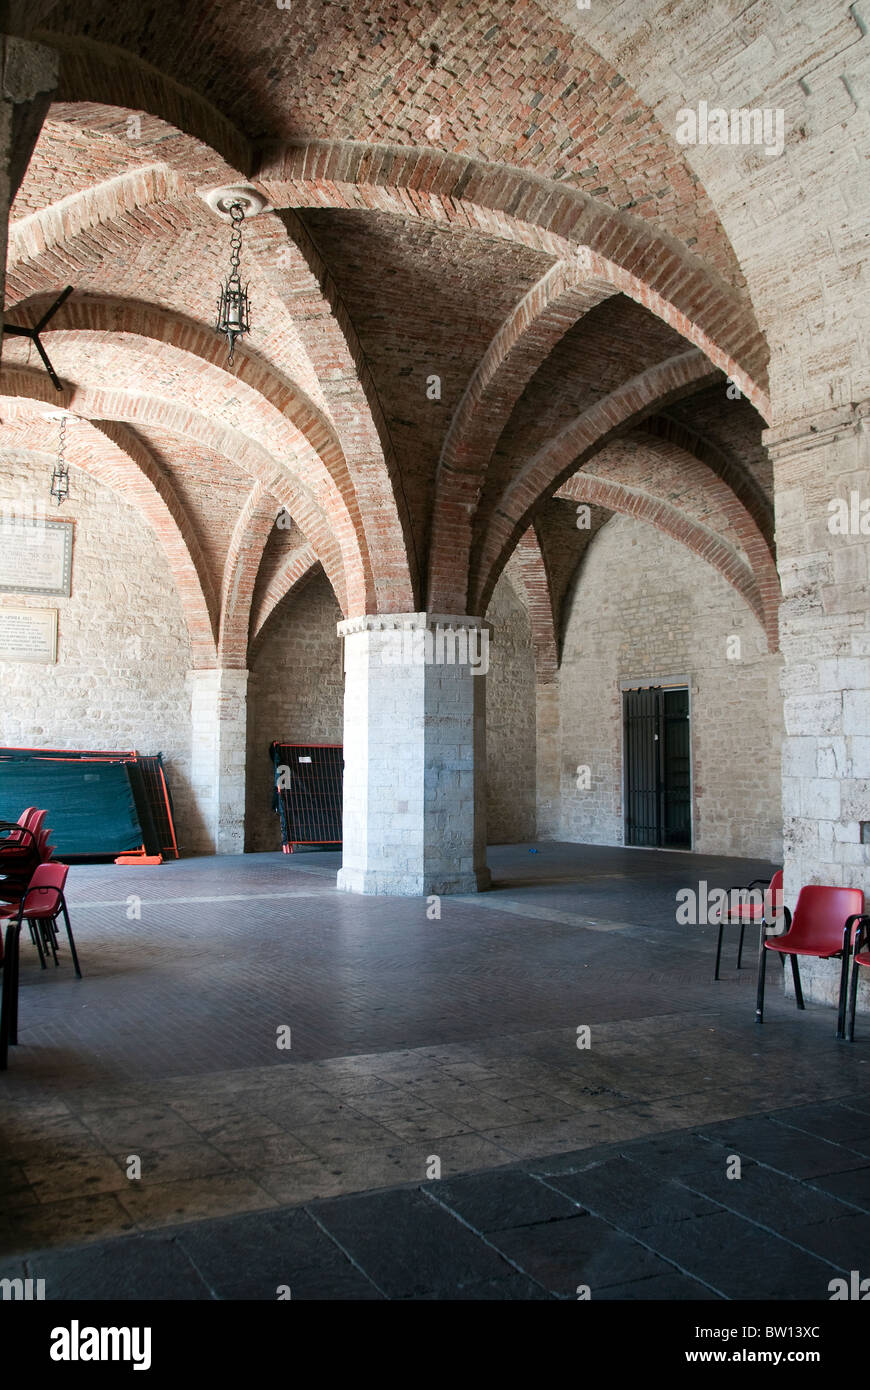 Cross vaults under the town hall of Todi Umbria - Stock Image